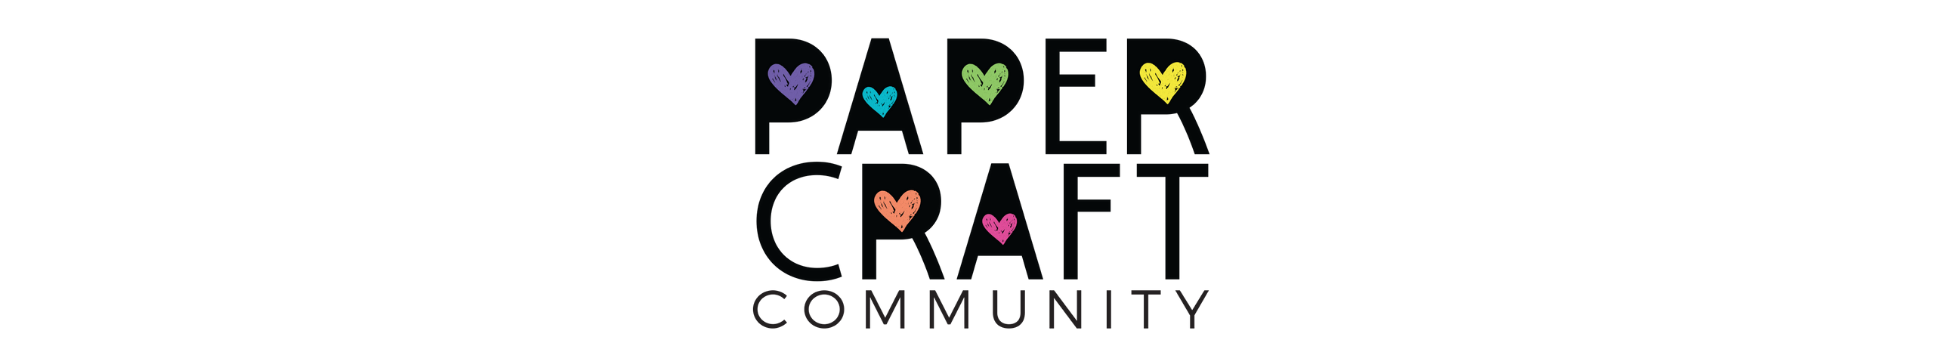 Paper Craft Community